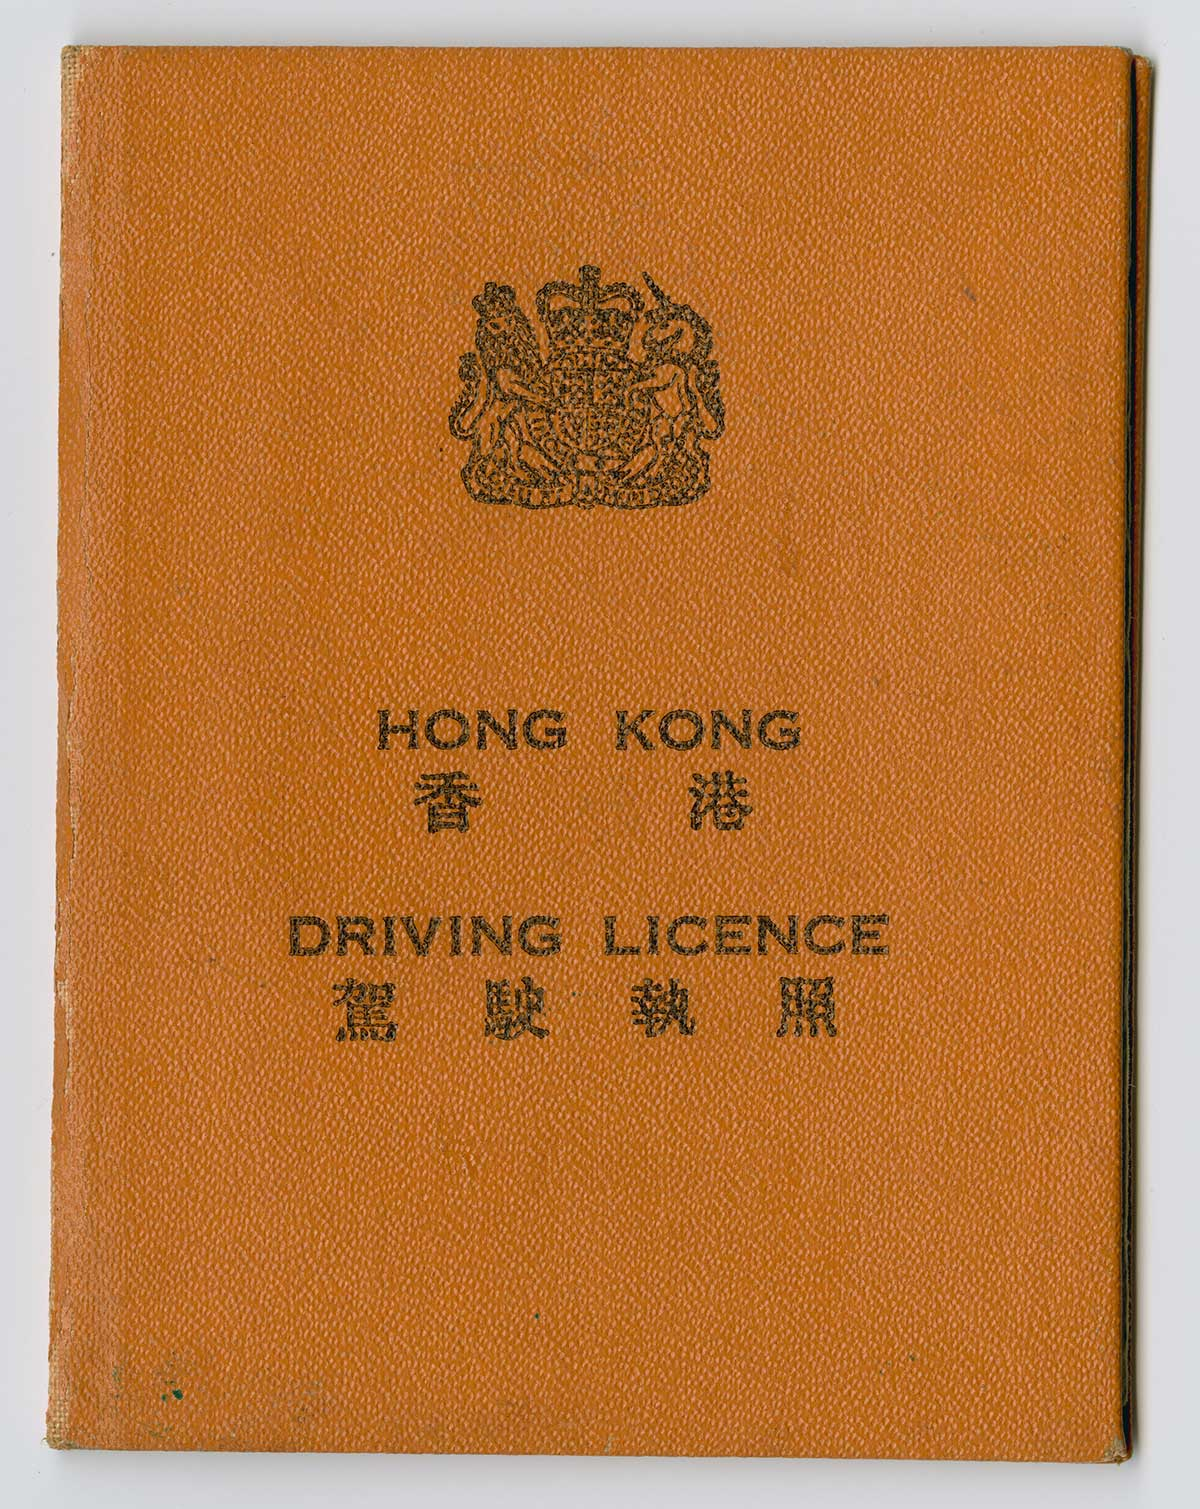 A dark orange booklet, a chinese symbol at the top. Under it are the words Hong Kong and Driving License.